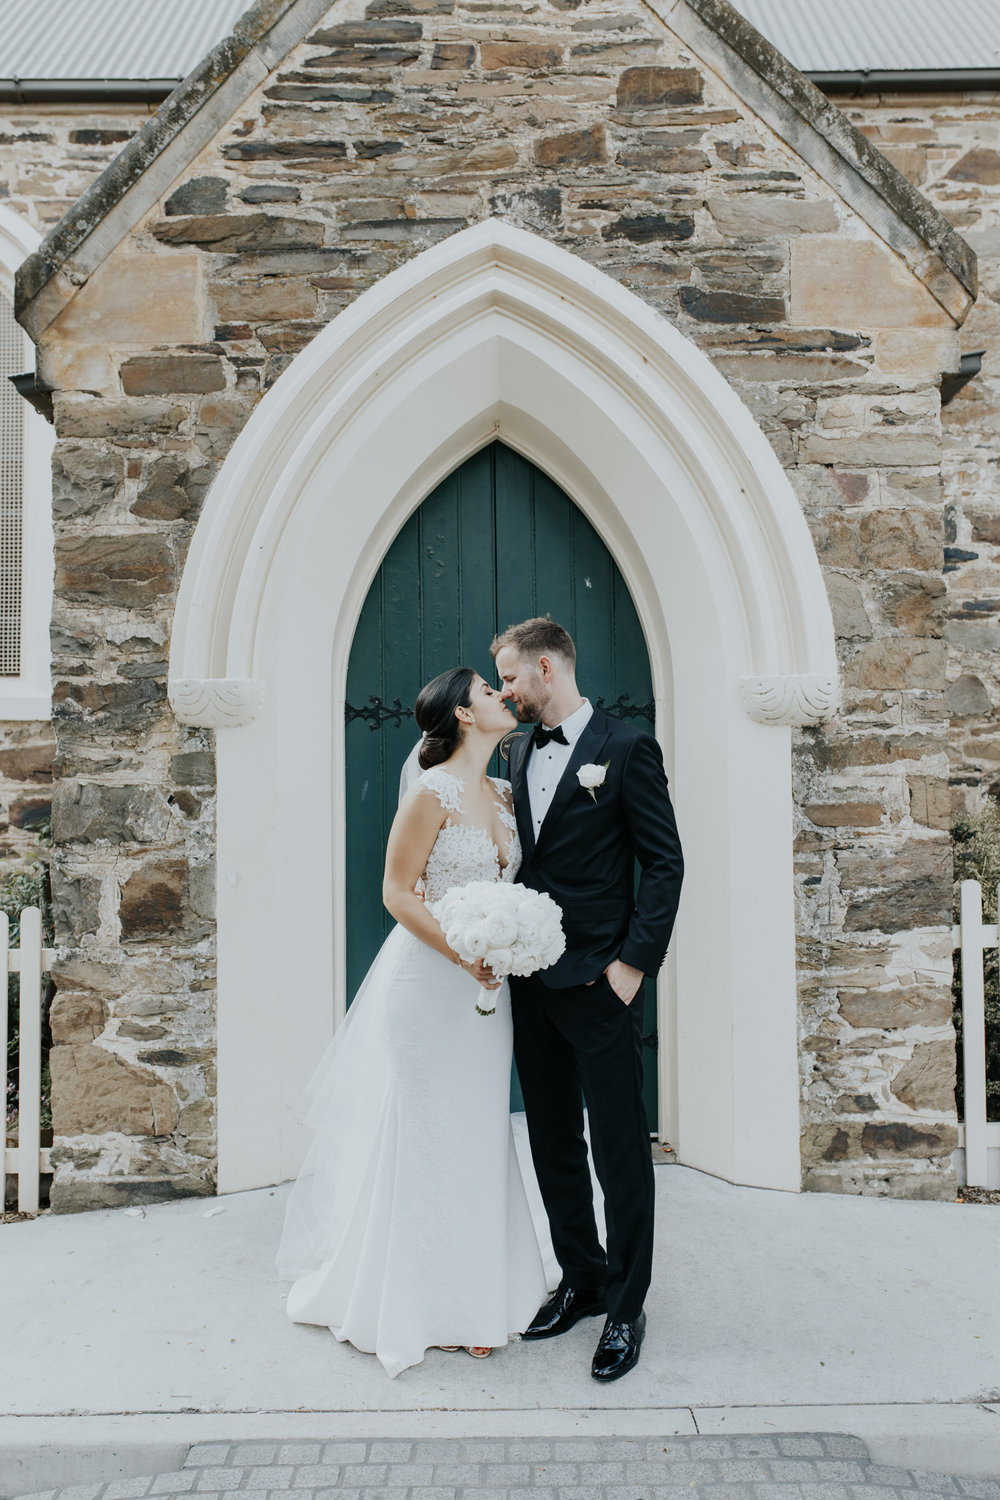 Fitters' Workshop Wedding Canberra - St Gregory's Church - photography by Jenny Wu Straight No Chaser Photography